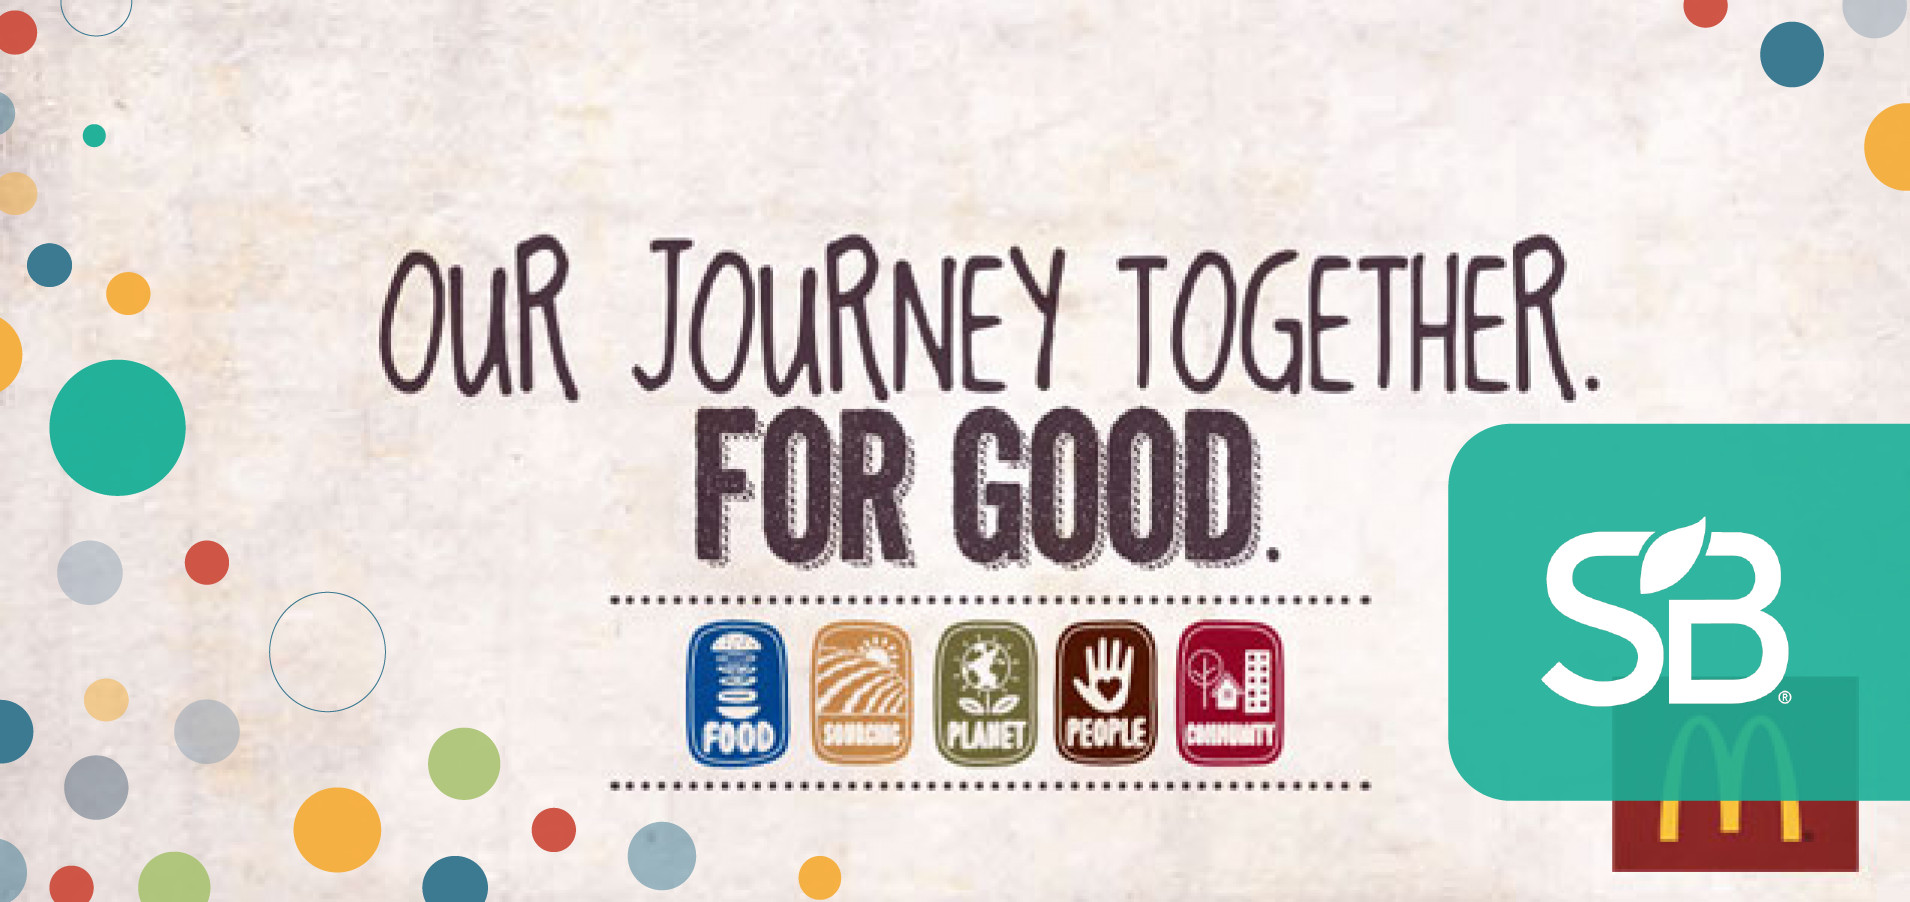 McDonald's Reveals CSR/Sustainability Framework and Host of 2020 Goals - Sustainable Brands